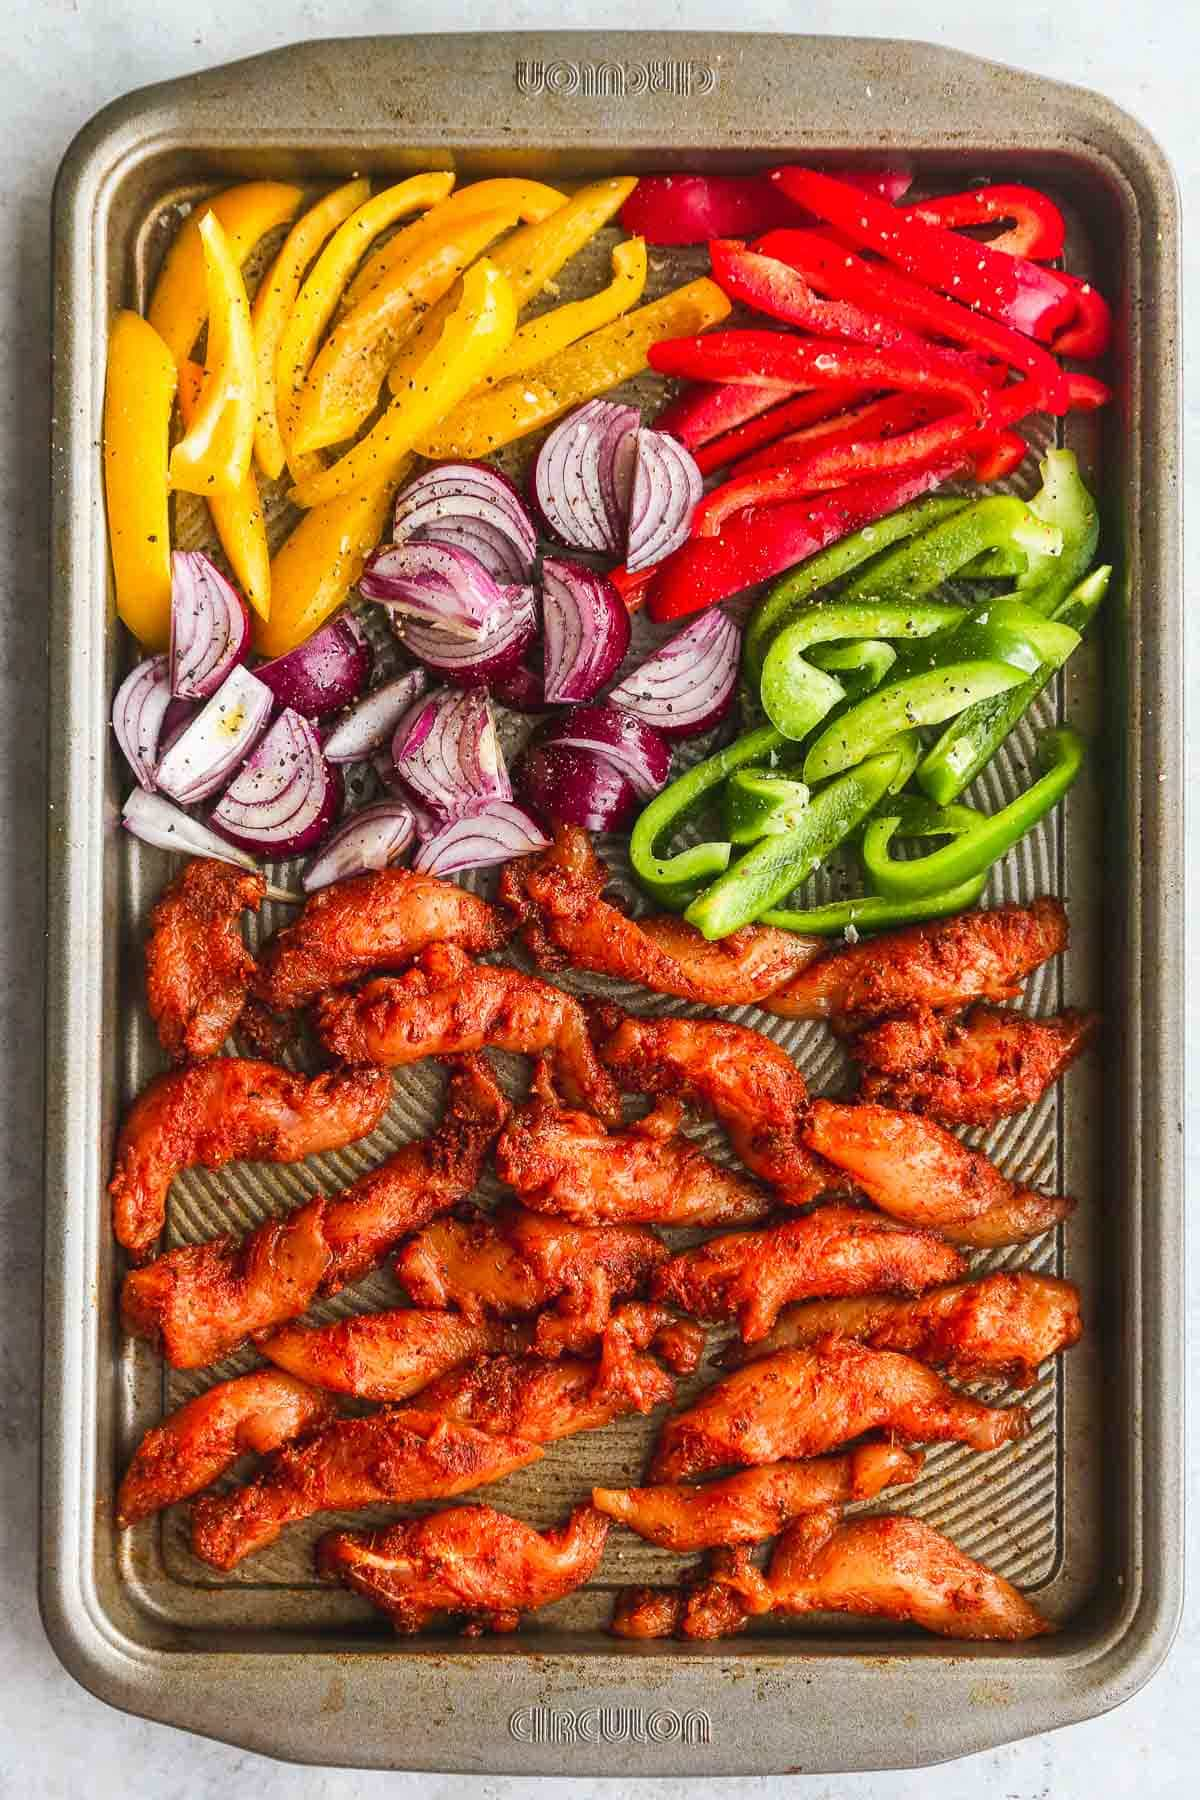 Raw seasoned chicken fajitas and vegetables on a sheet pan